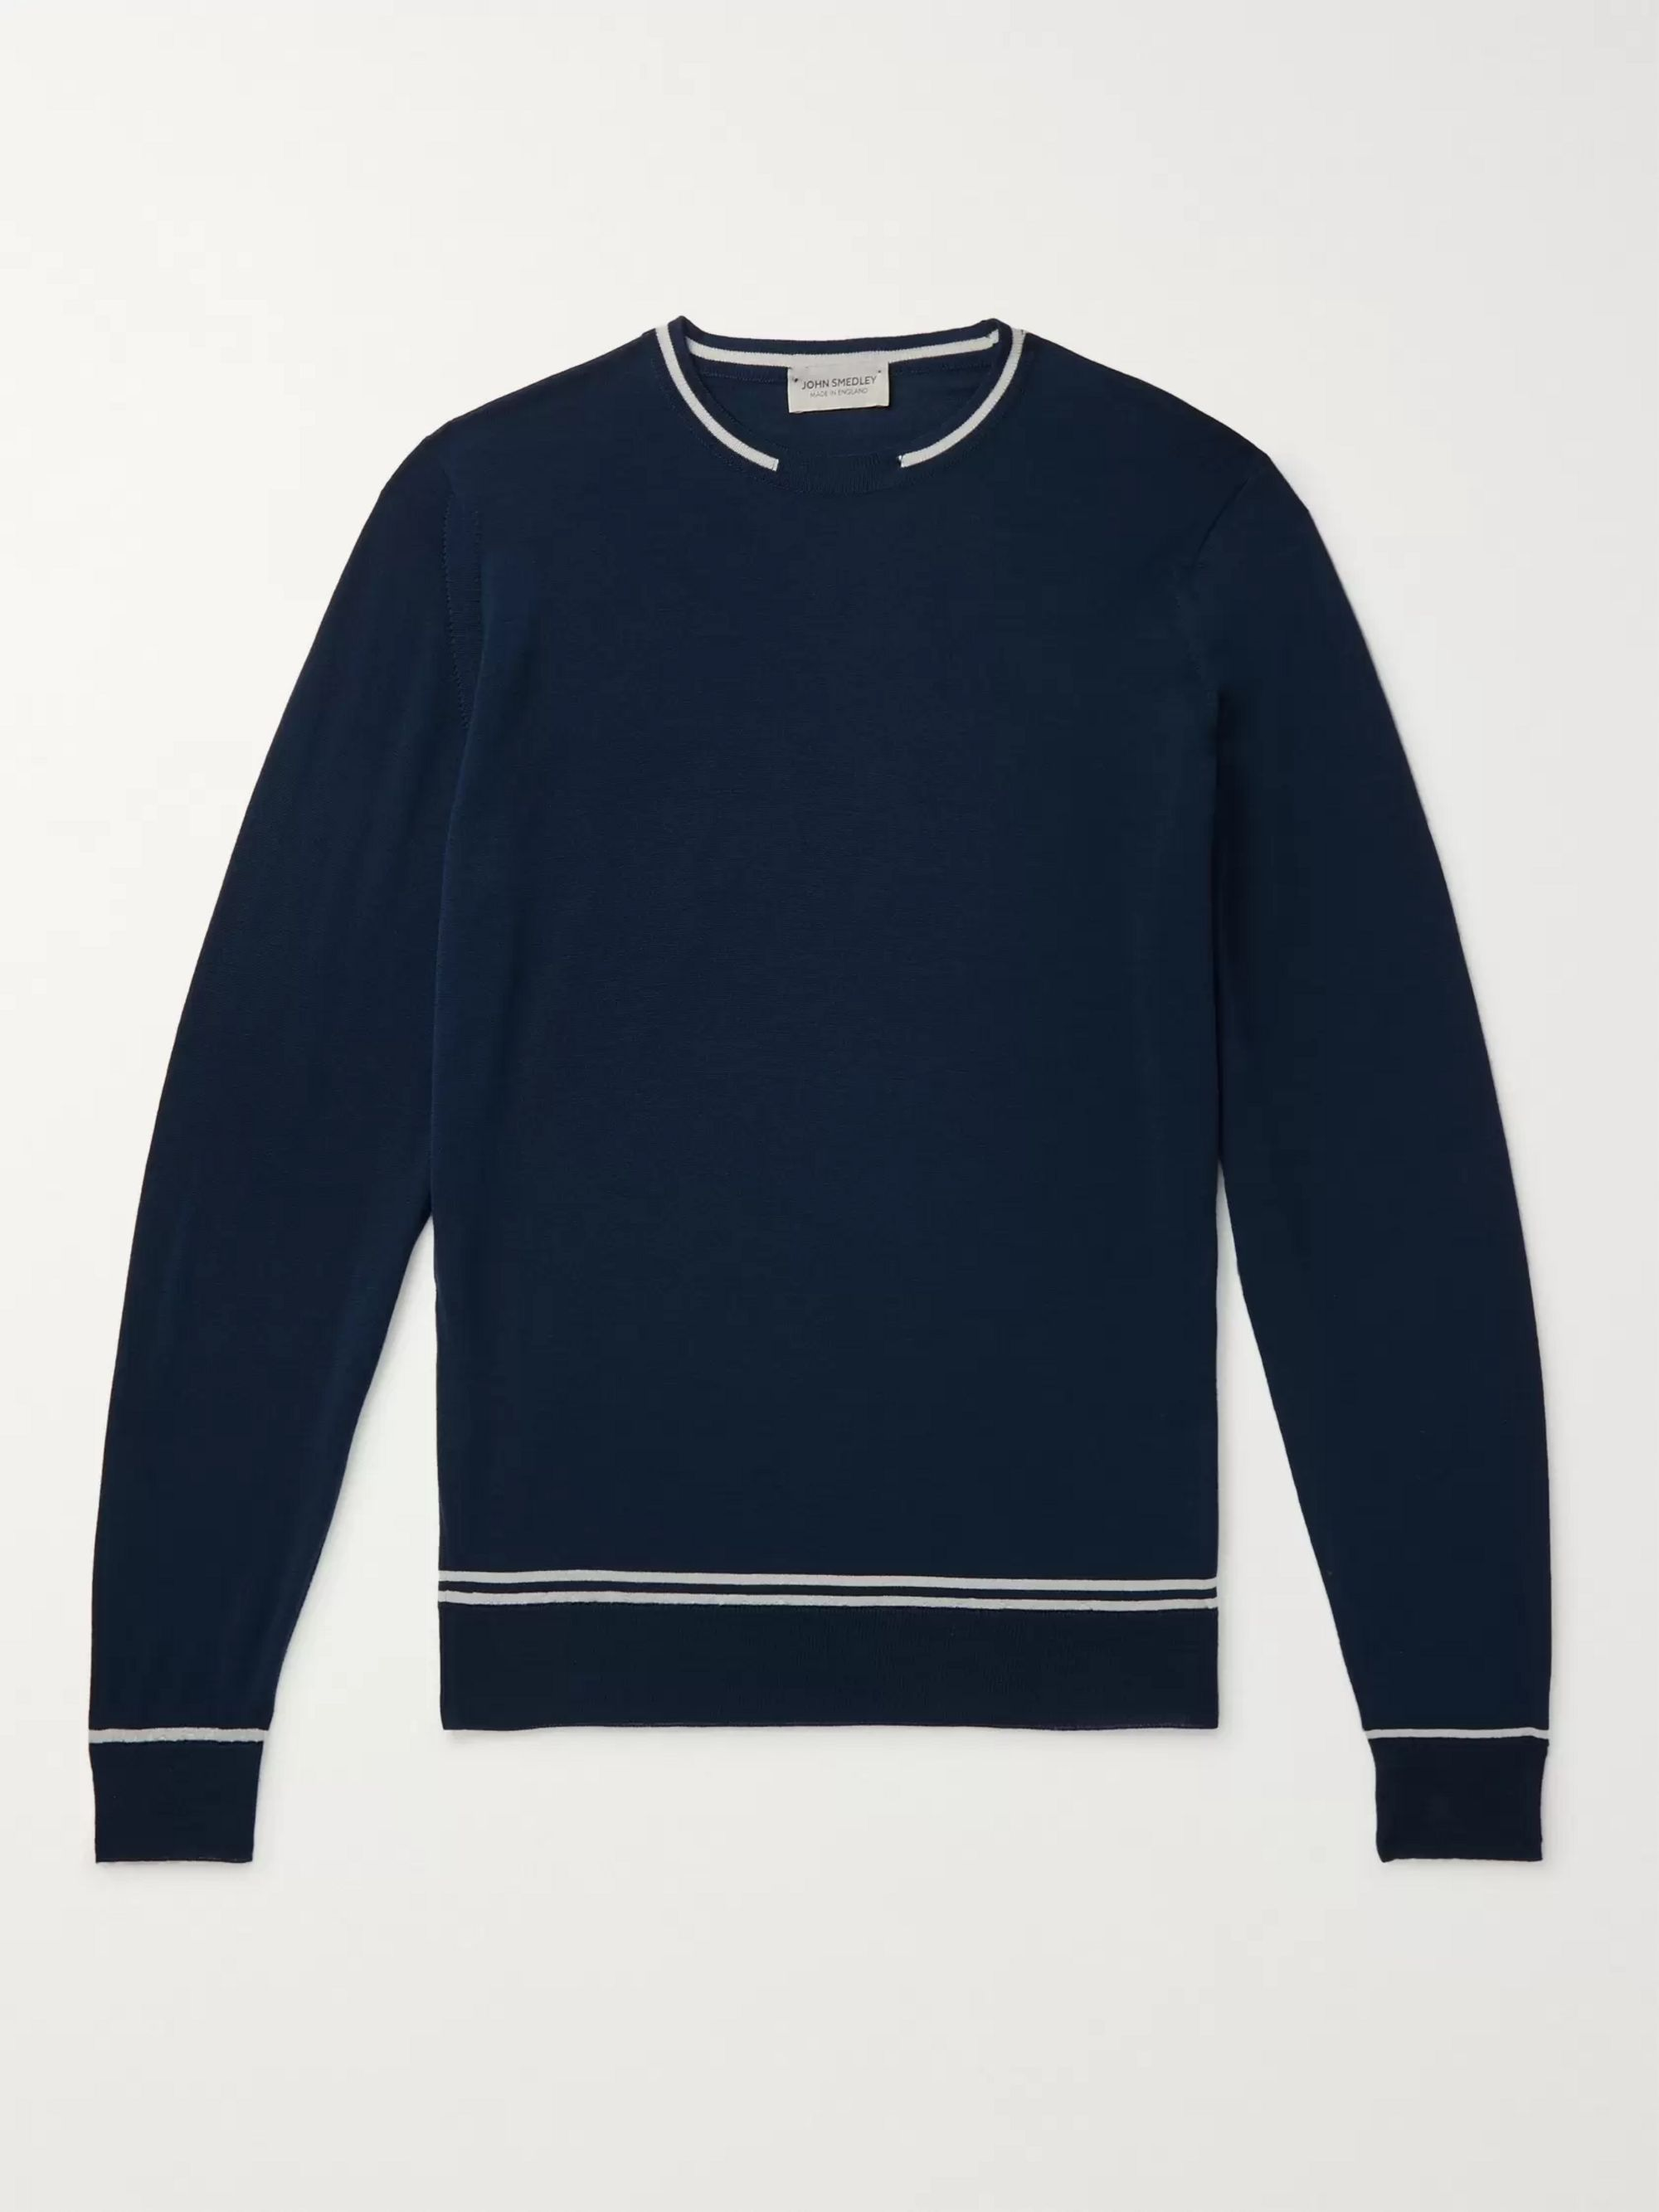 John Smedley Slim-Fit Contrast-Tipped Merino Wool Sweater